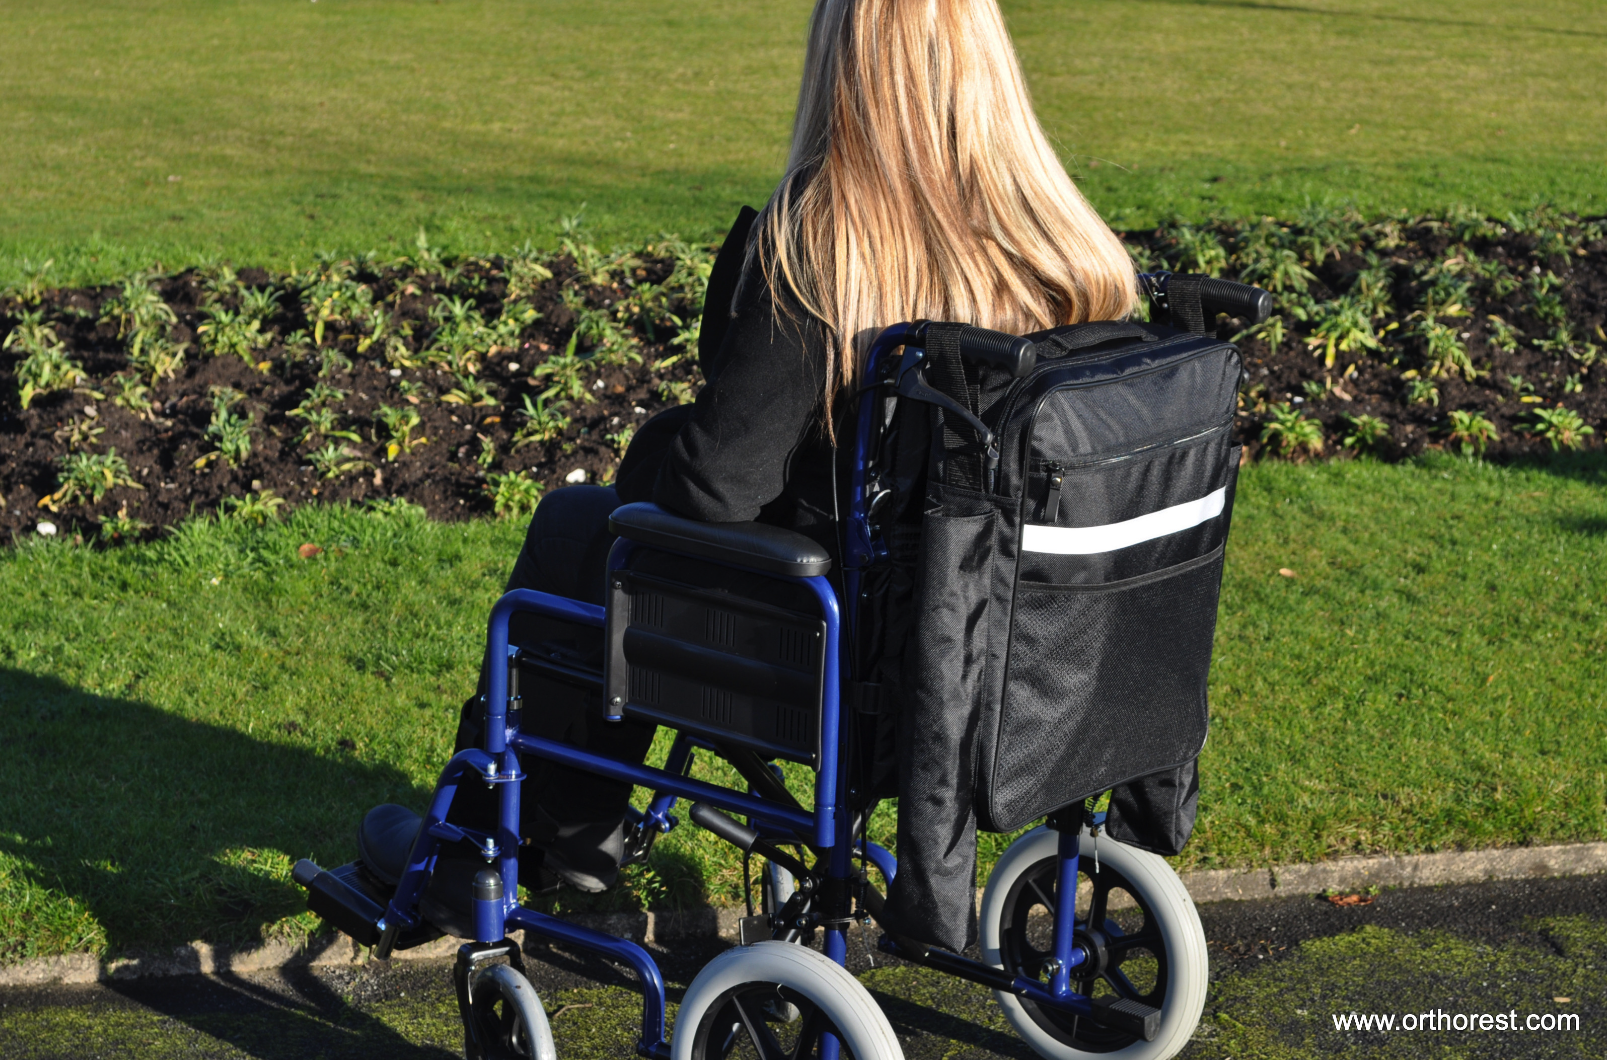 lady-sat-in-a-wheelchair-with-a-bag-on-the-back